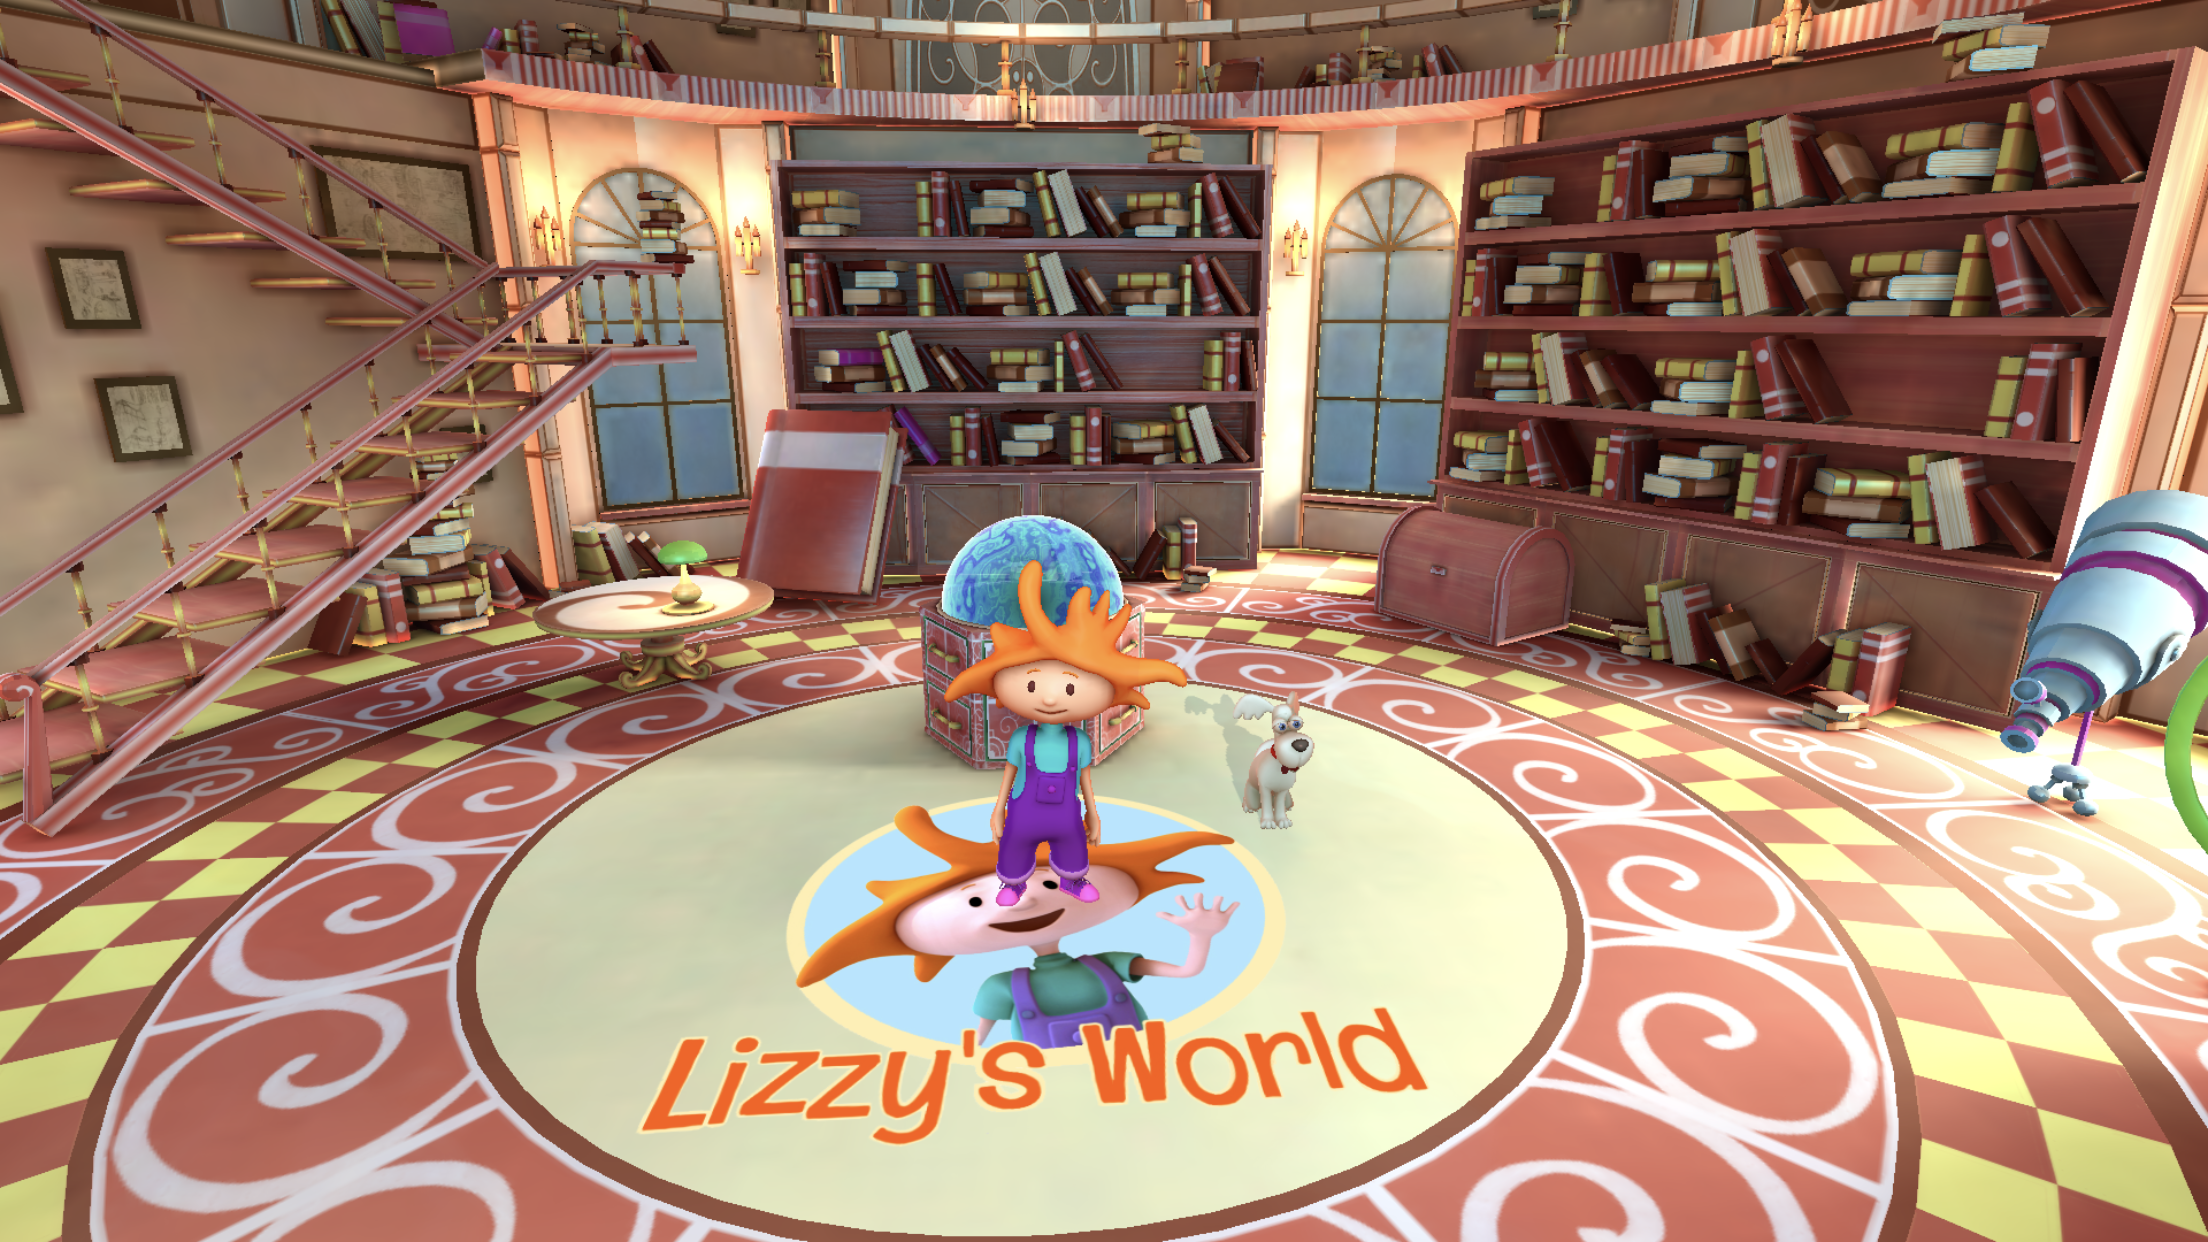 Lizzy's World AR app for preschoolers